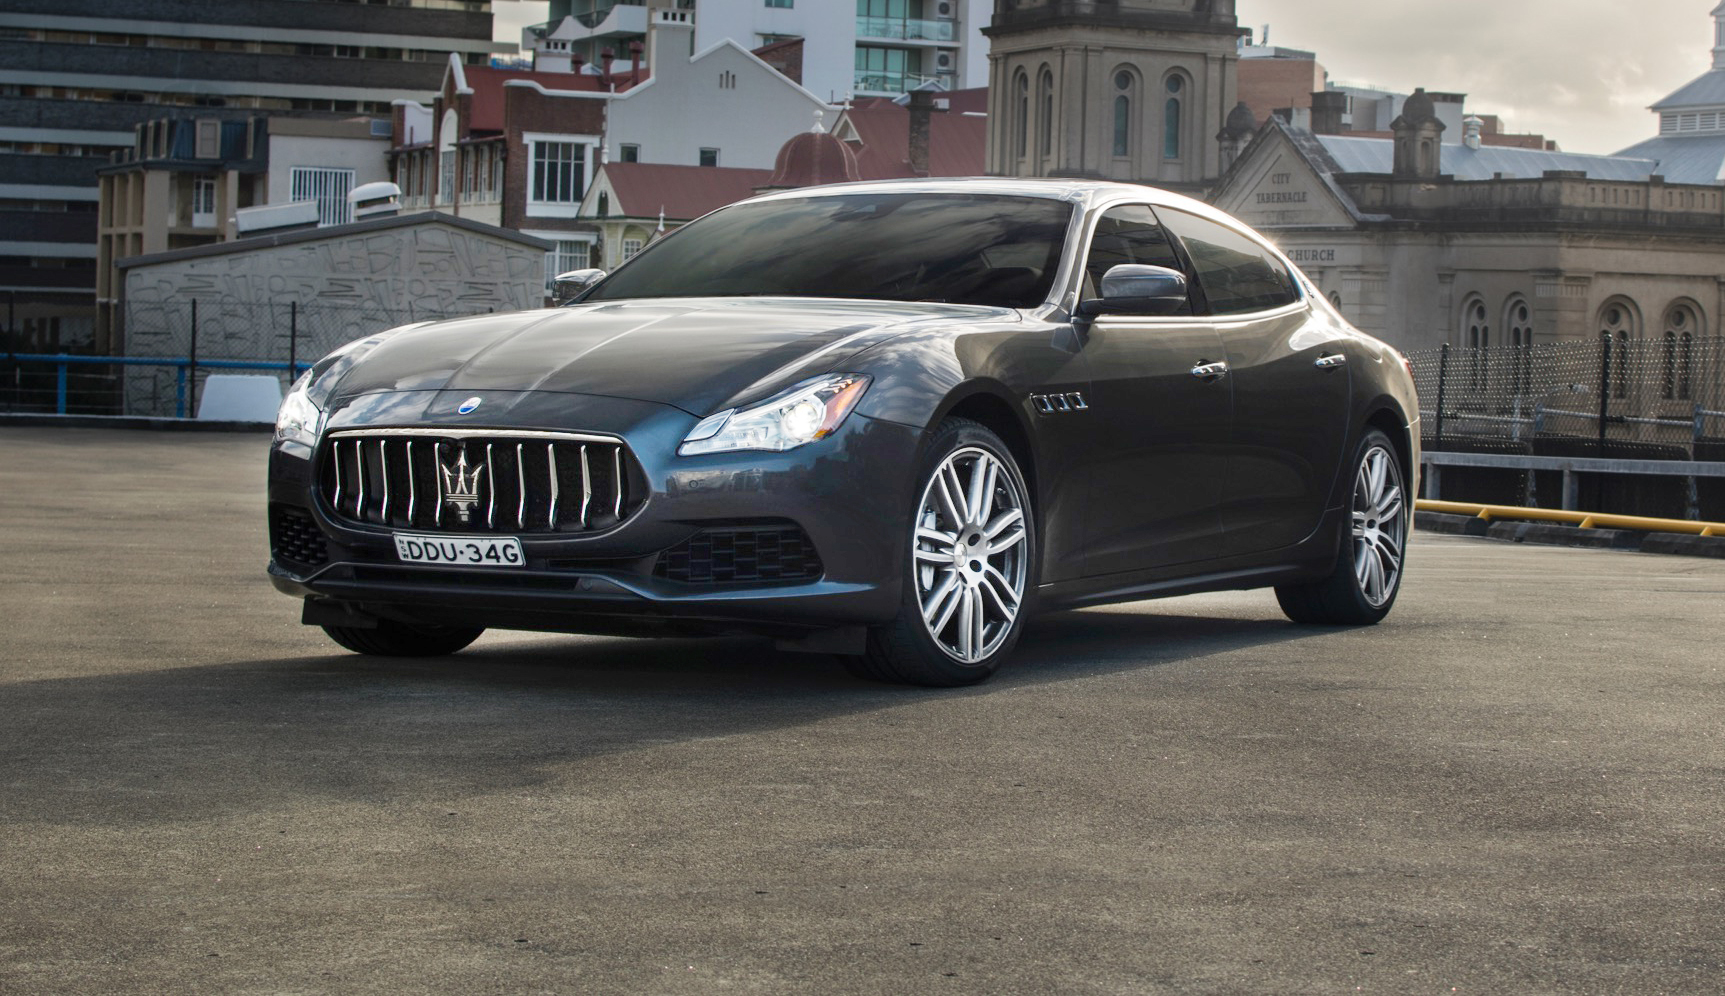 2017 maserati quattroporte review photos caradvice. Black Bedroom Furniture Sets. Home Design Ideas